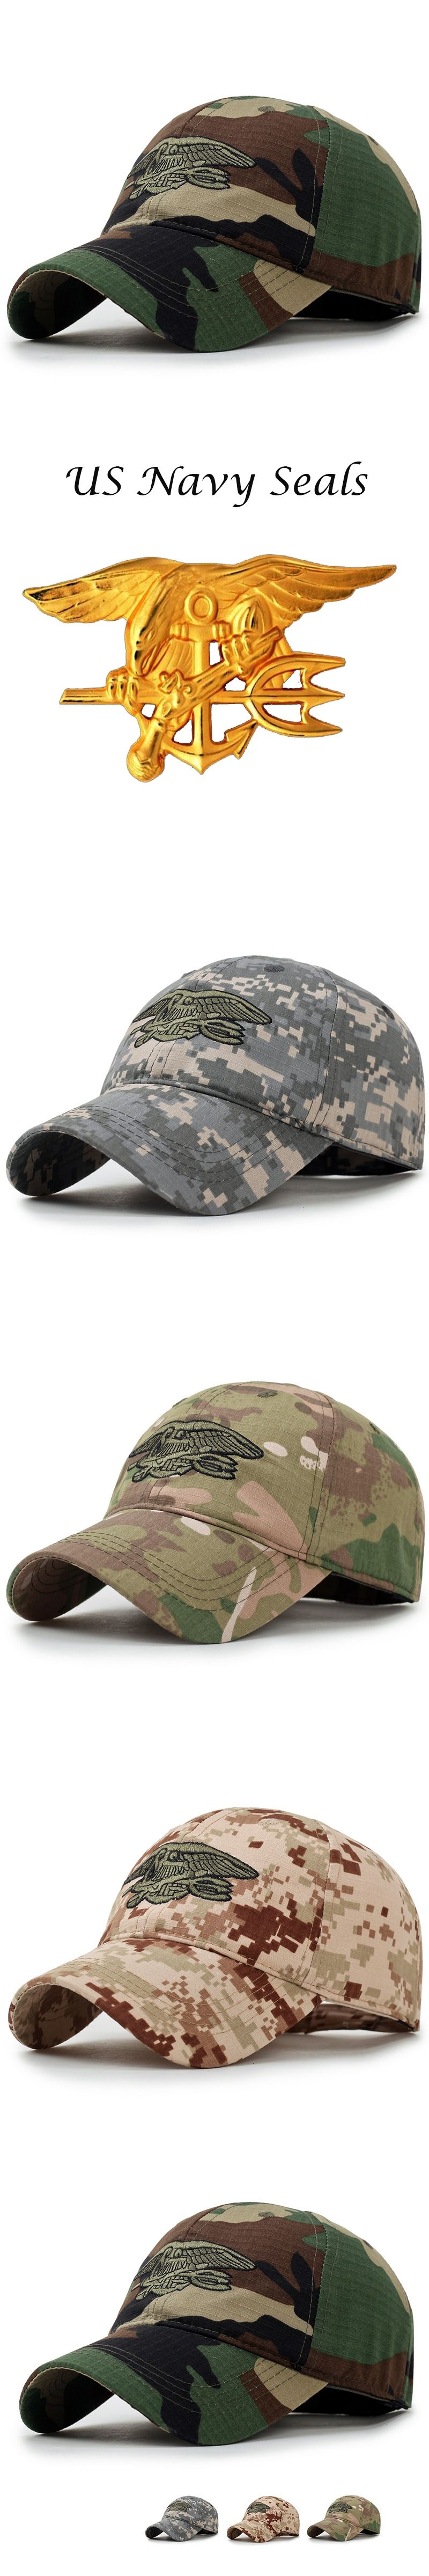 dd57d18a Baseball Cap Snapback Caps Brand Men Navy Seals Tactical Cap Embroidered  Camouflage Hat Casual Gorras Adjustable